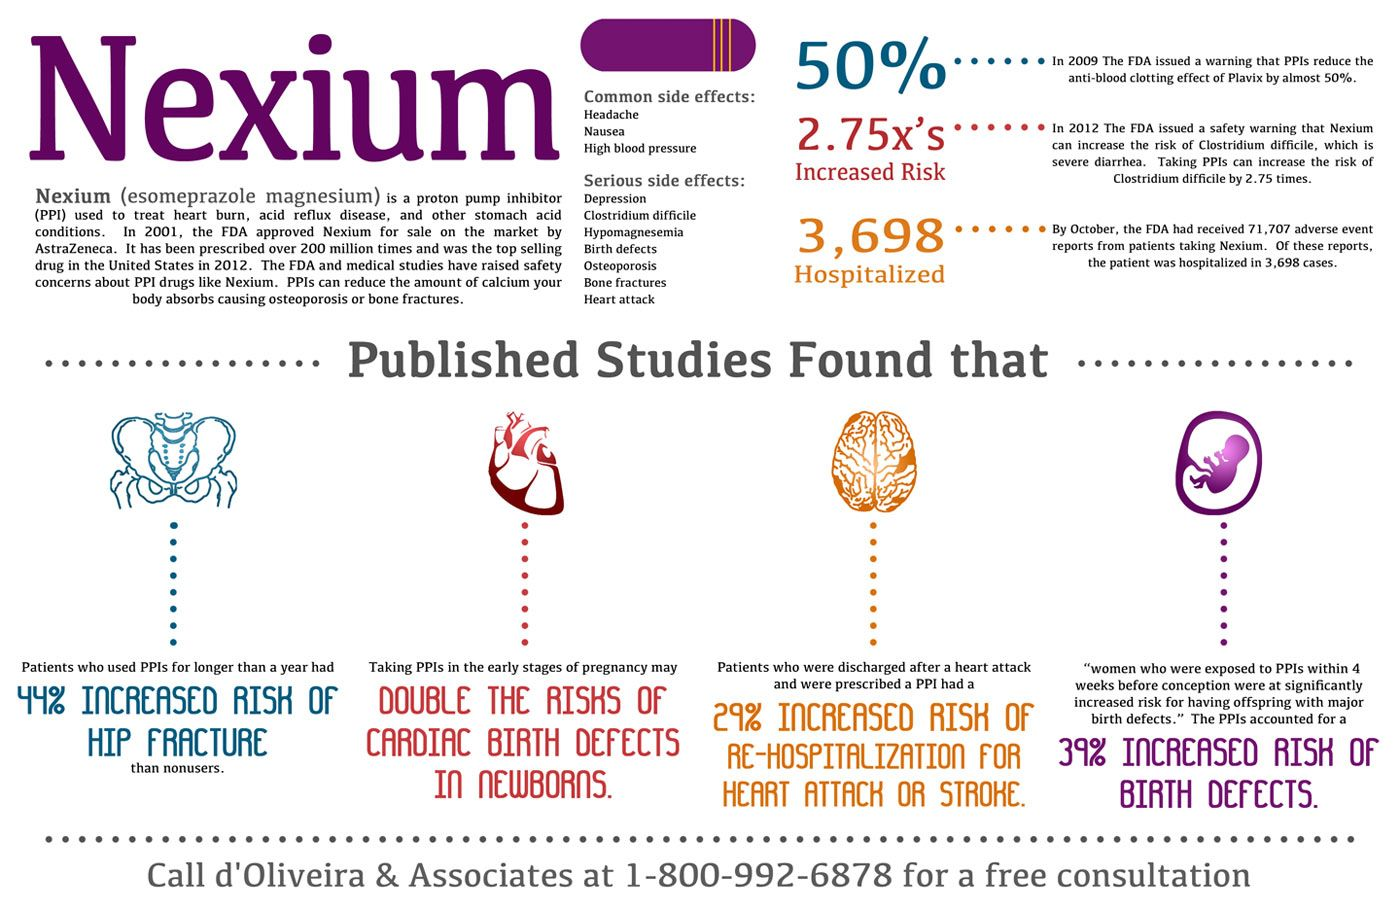 Why does nexium cause hip fractures